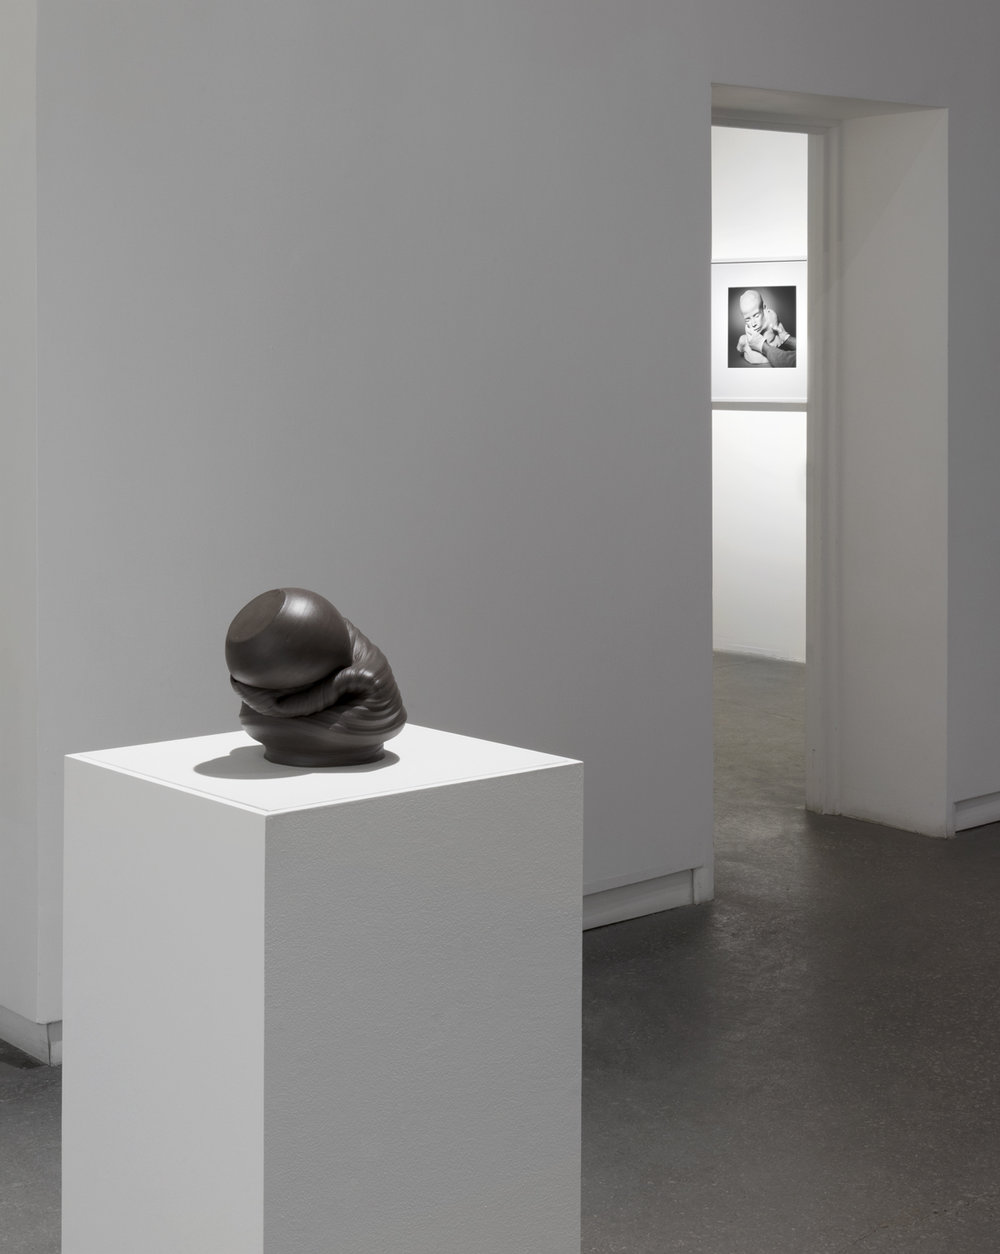 """Sixes and Sevens (2017) ceramic, sizes variable   Lifecast (2017) gelatin silver print, 13.5"""" x 15""""  Installation view of  Unruly Matter  at Daniel Faria Gallery, Toronto, Canada"""